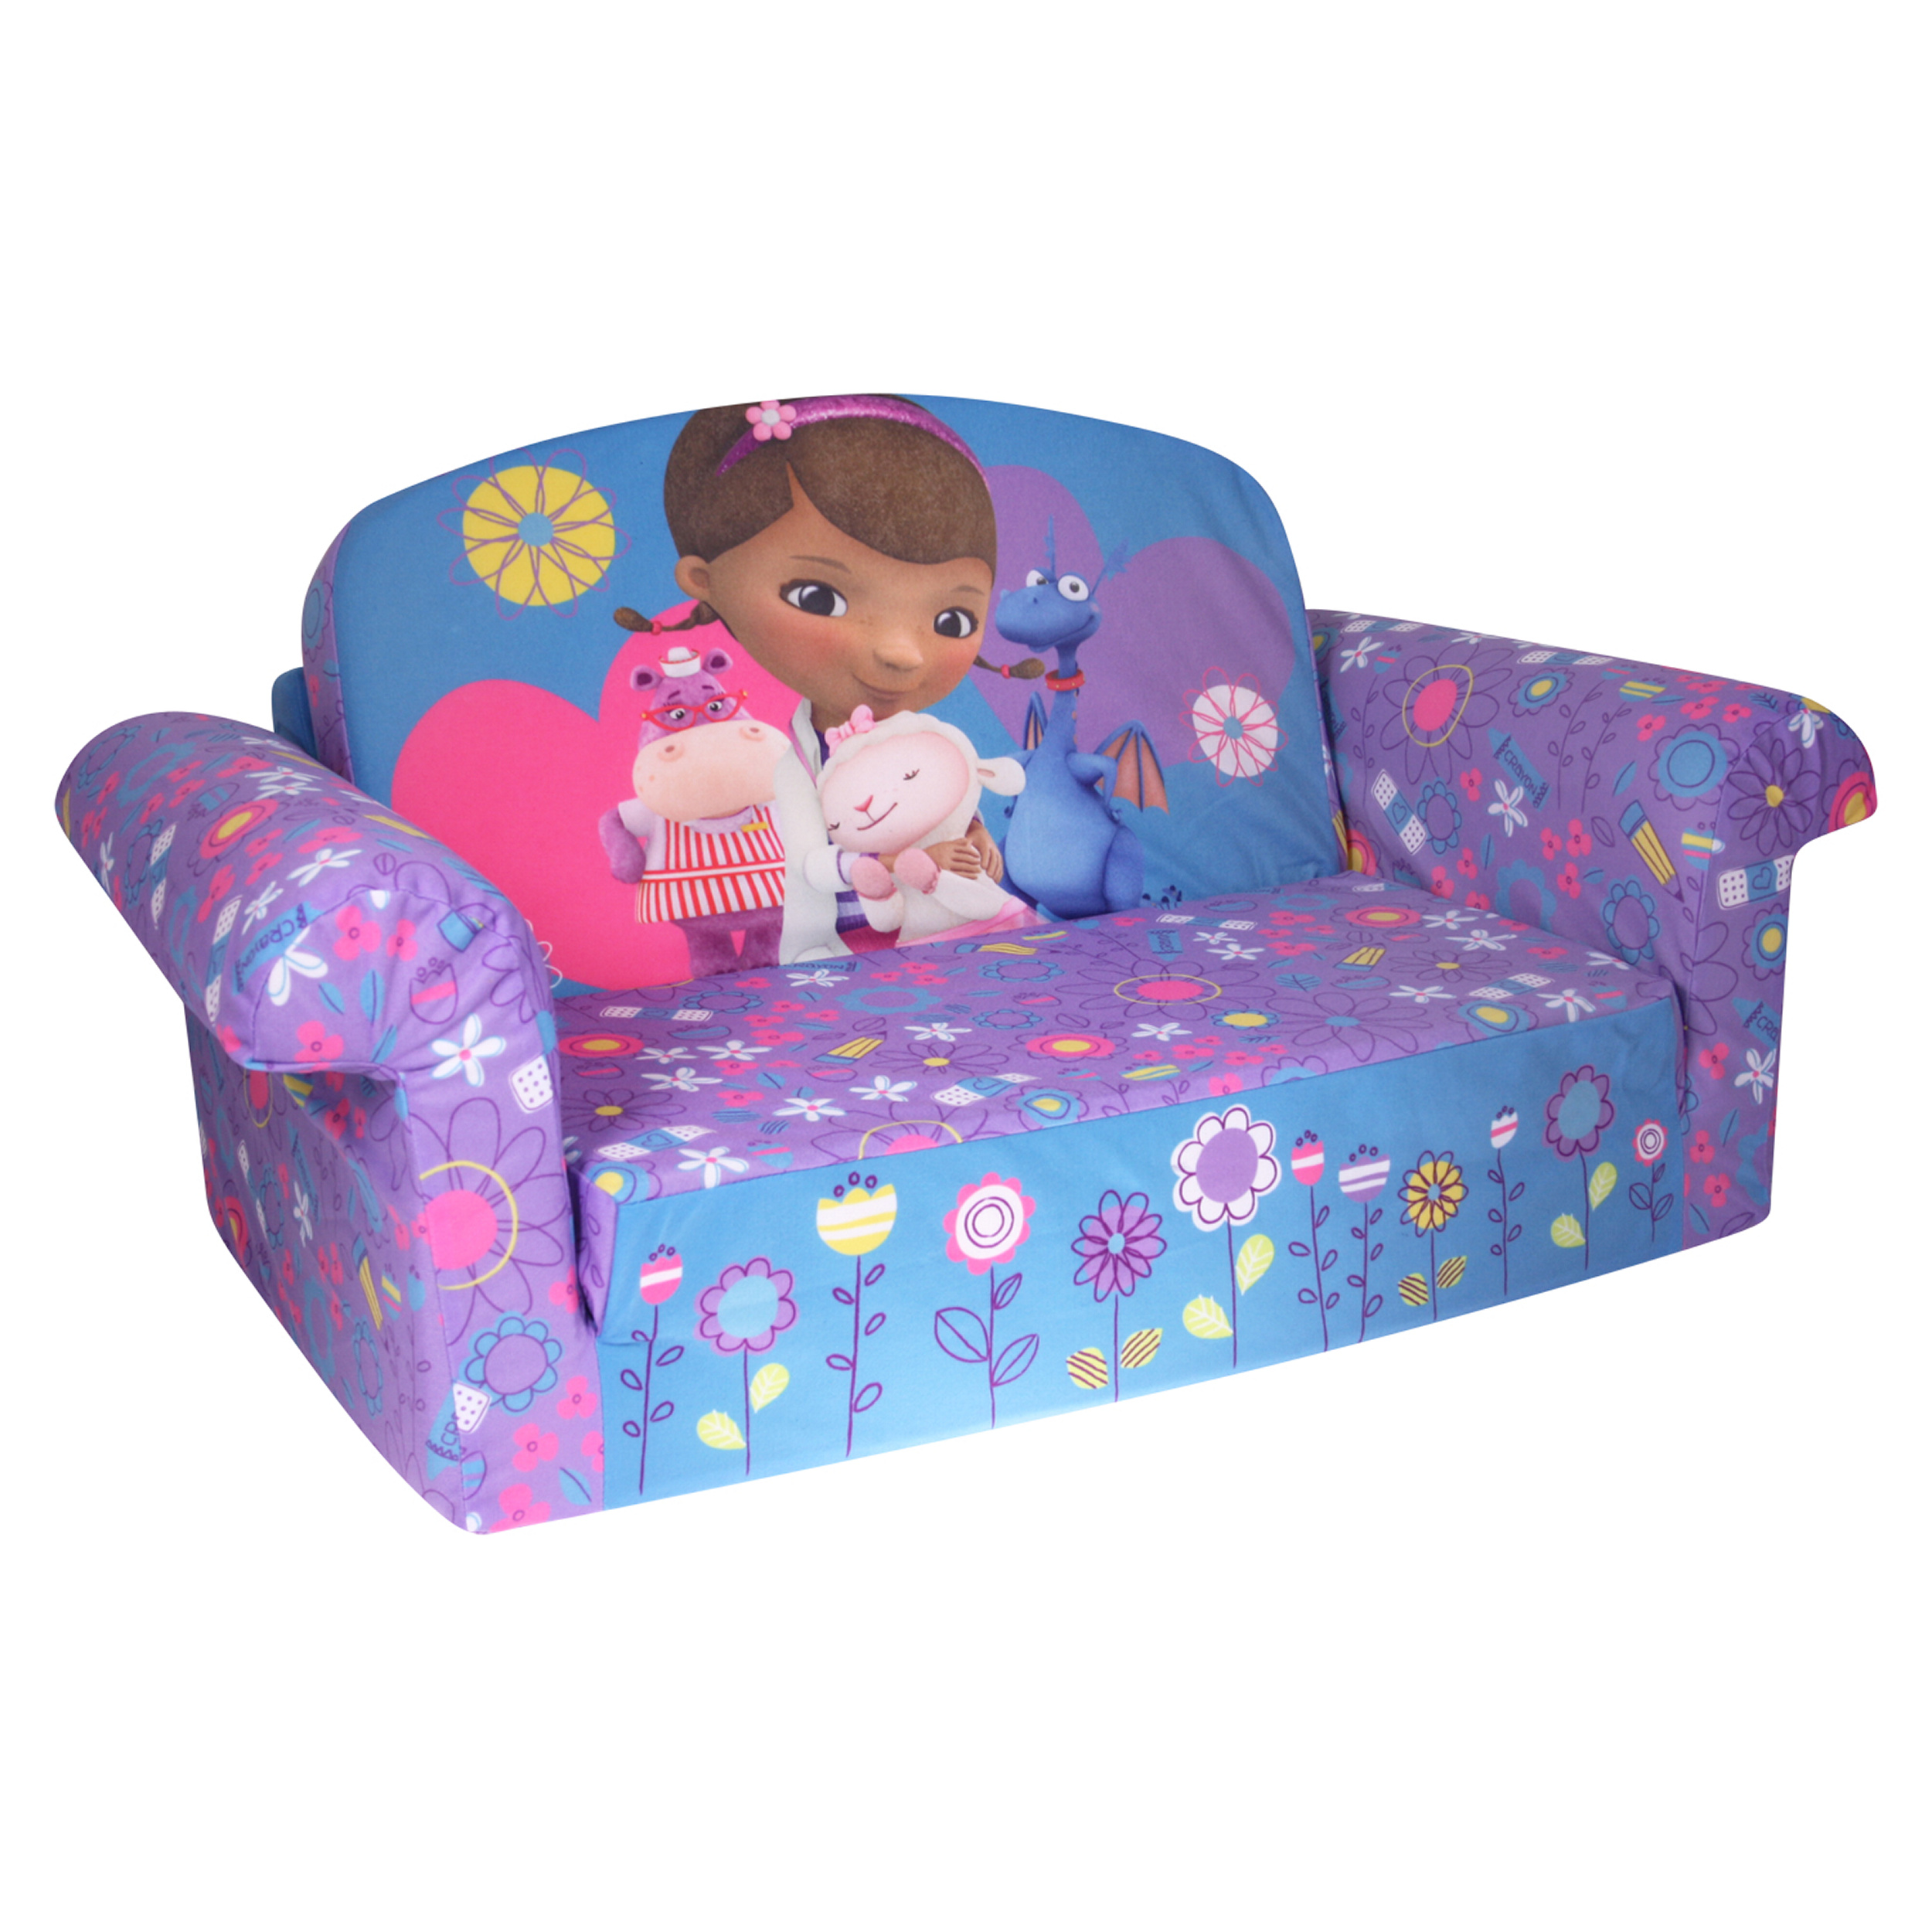 Marshmallow Furniture, Childrenu0027s 2 In 1 Flip Open Foam Sofau2026